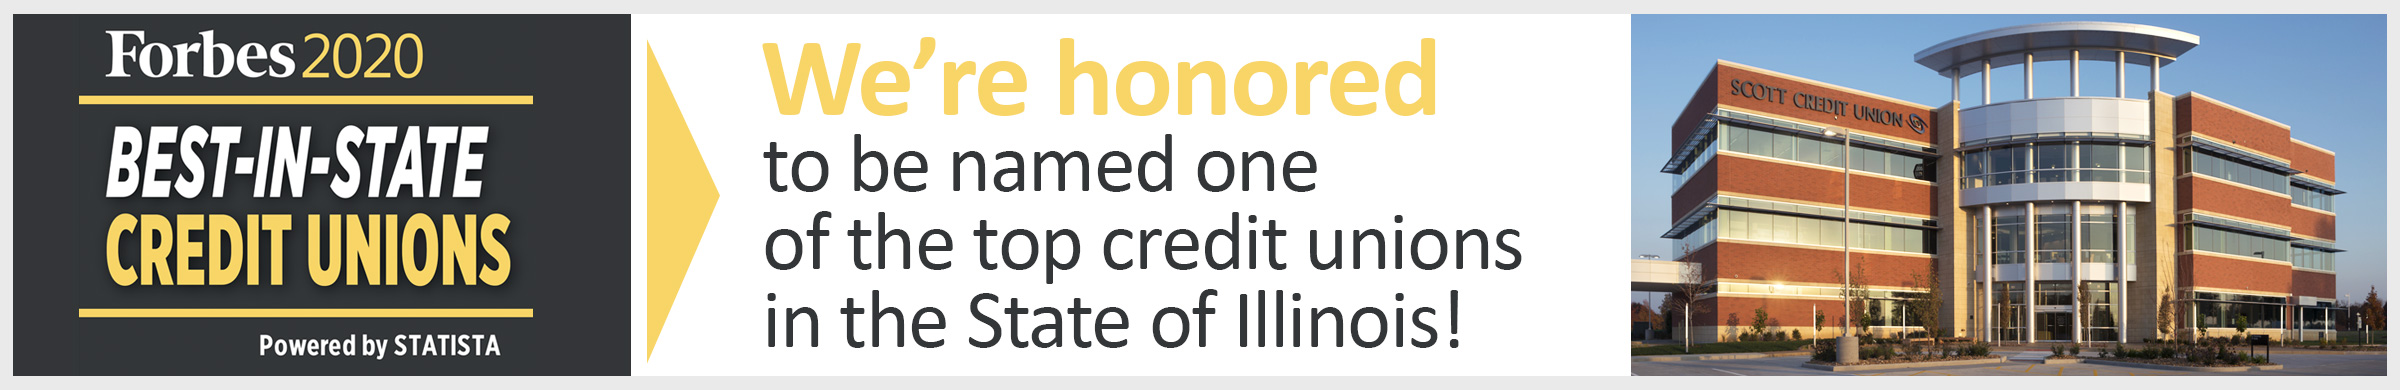 Forbes Award for Best In-State Credit Union